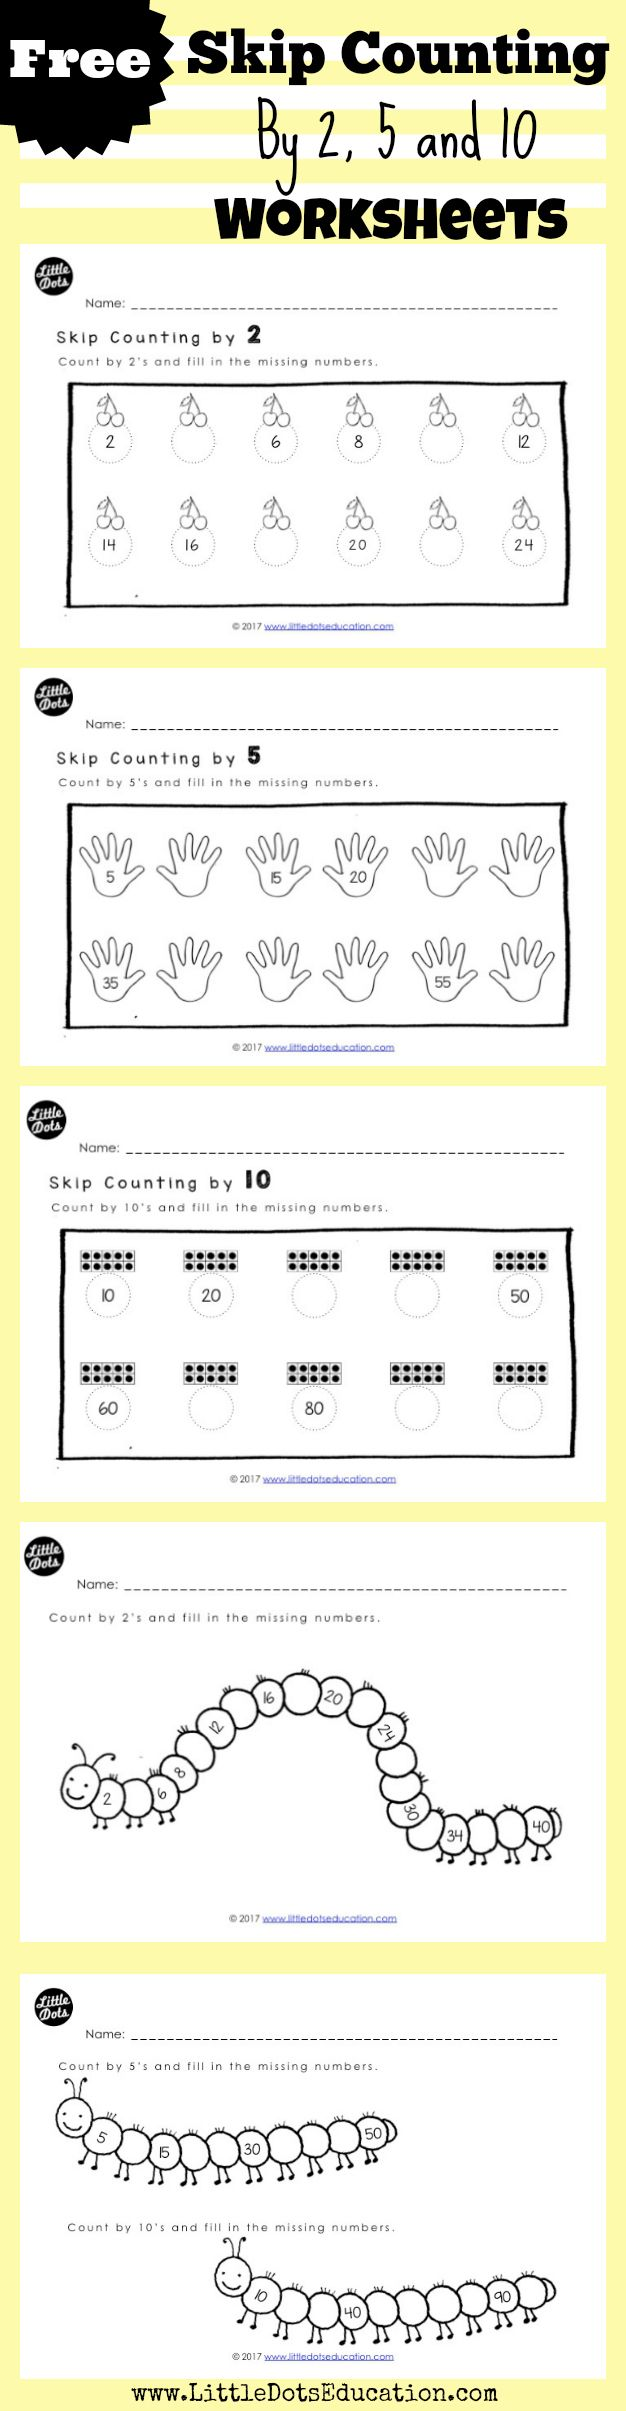 single post skip counting activities kindergarten worksheets numbers kindergarten. Black Bedroom Furniture Sets. Home Design Ideas